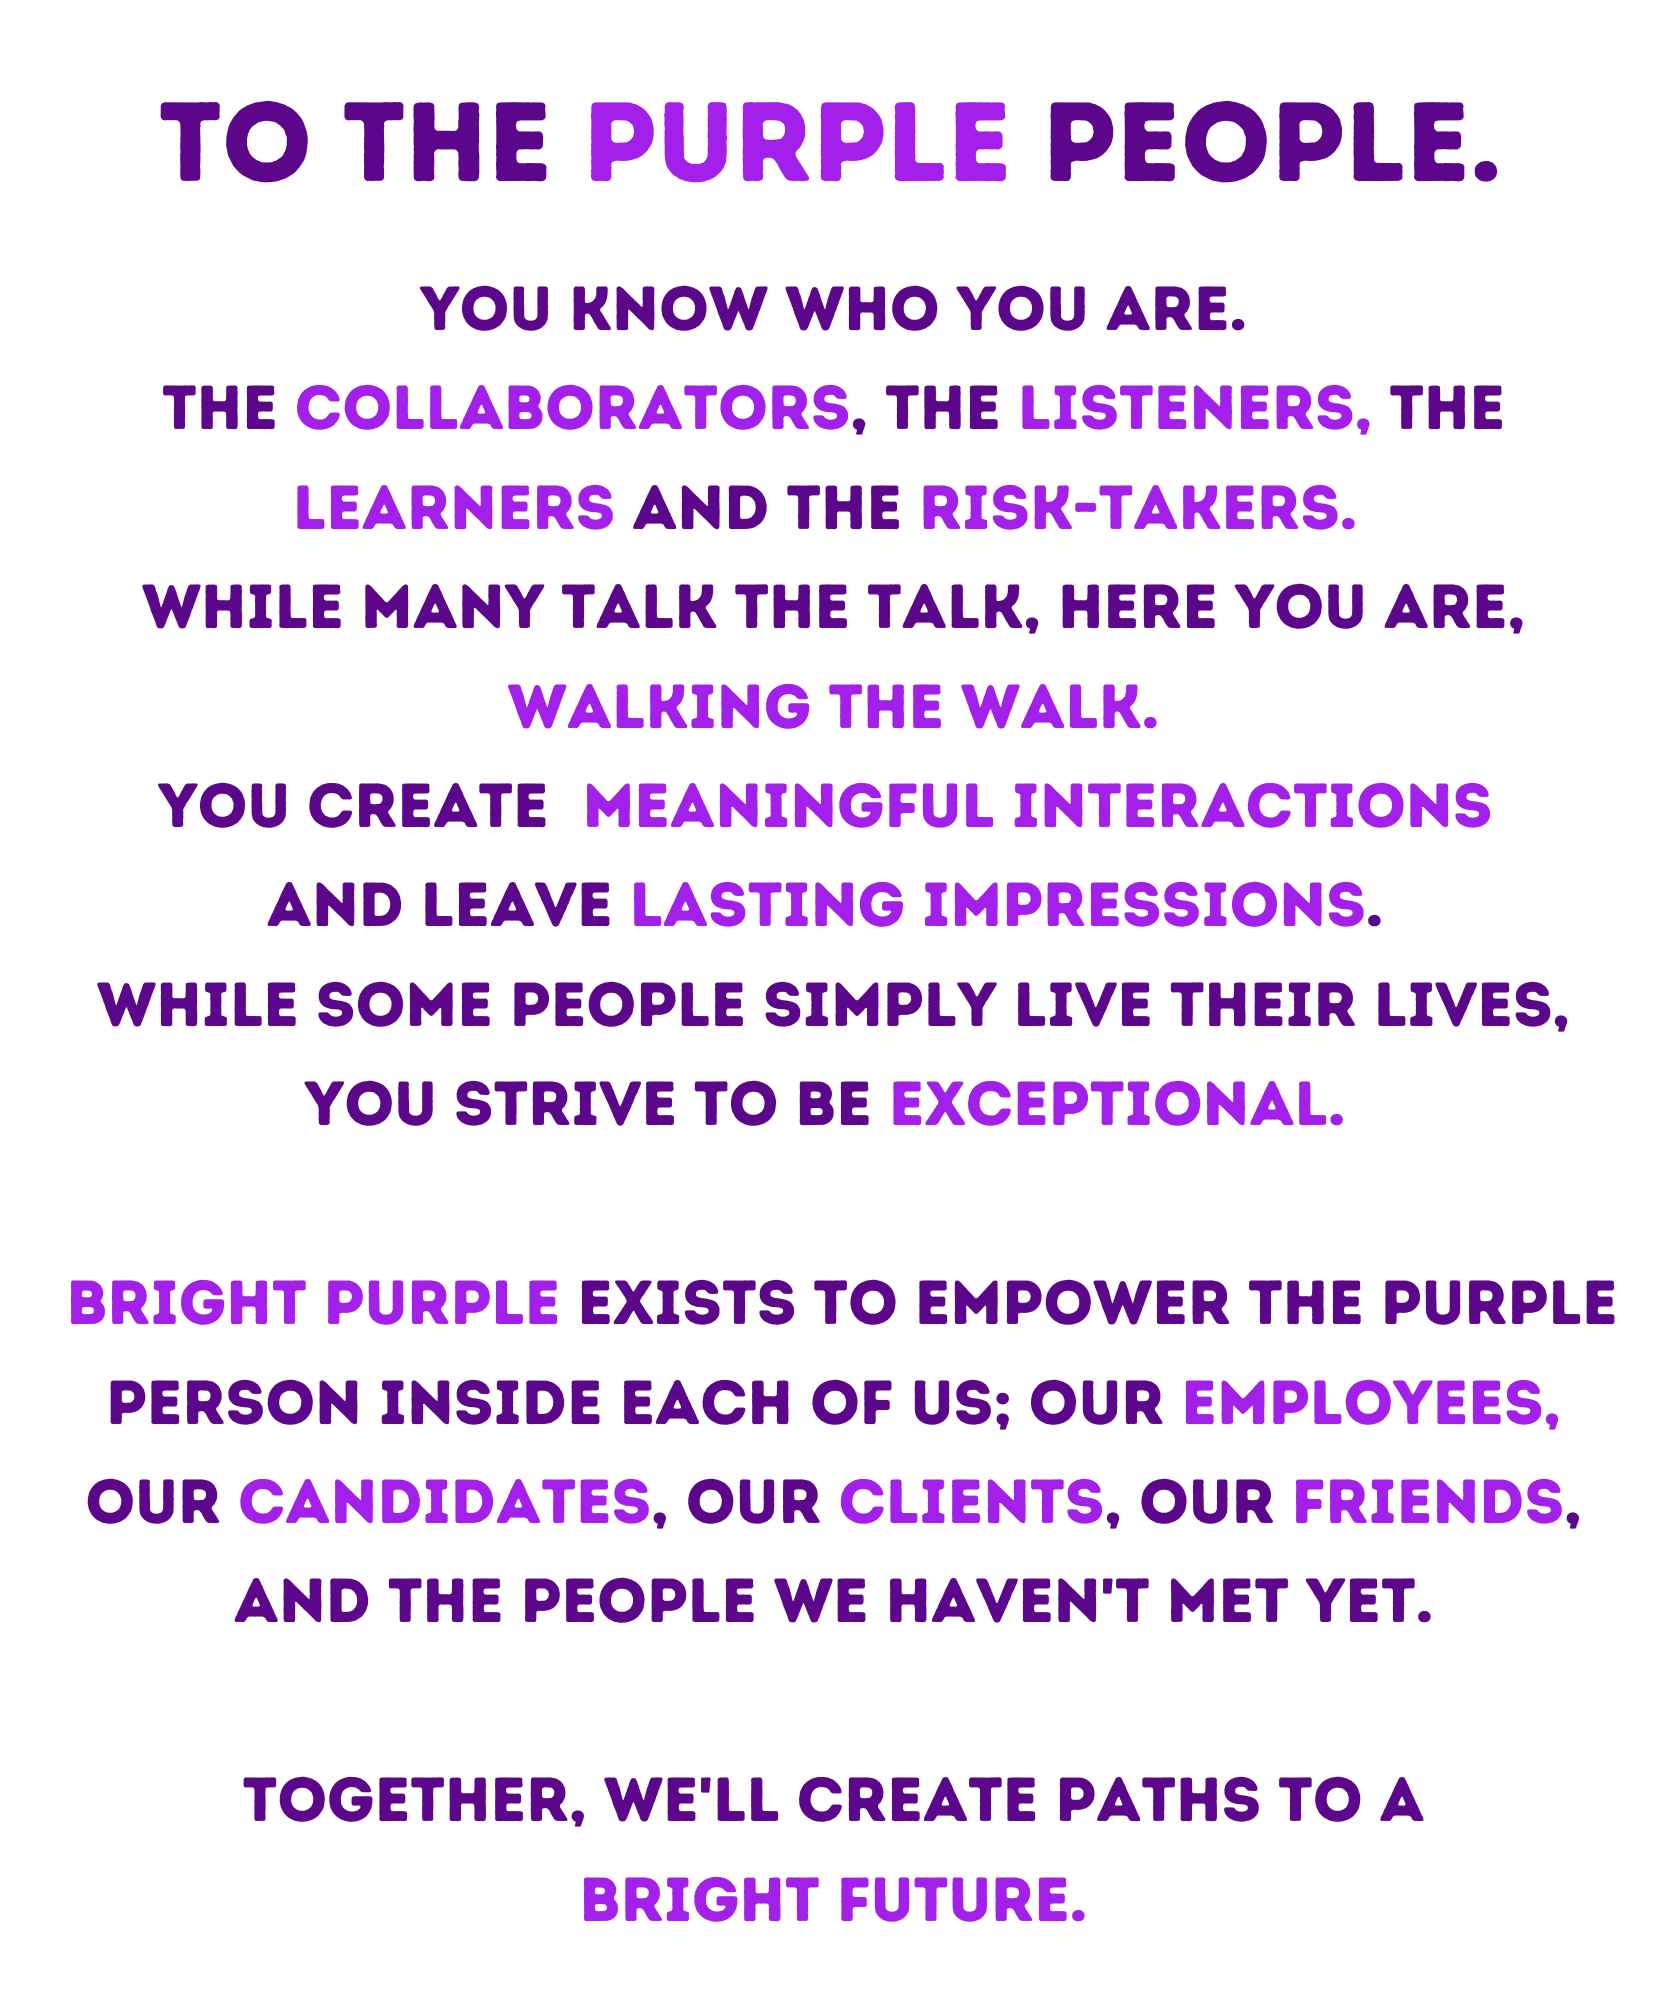 To the Purple People: you know who you are. the collaborators, the listeners, the learners and the risk-takers.  while many talk the talk, here you are, walking the walk. you create meaningful interactions  and leave Lasting impressions.  while some people simply live their lives, you strive to be exceptional.  bright purple exists to empower the purple person inside each of us; our employees, our candidates, our clients, our friends, and the people we haven't met yet. together, we'll create paths to a bright future.